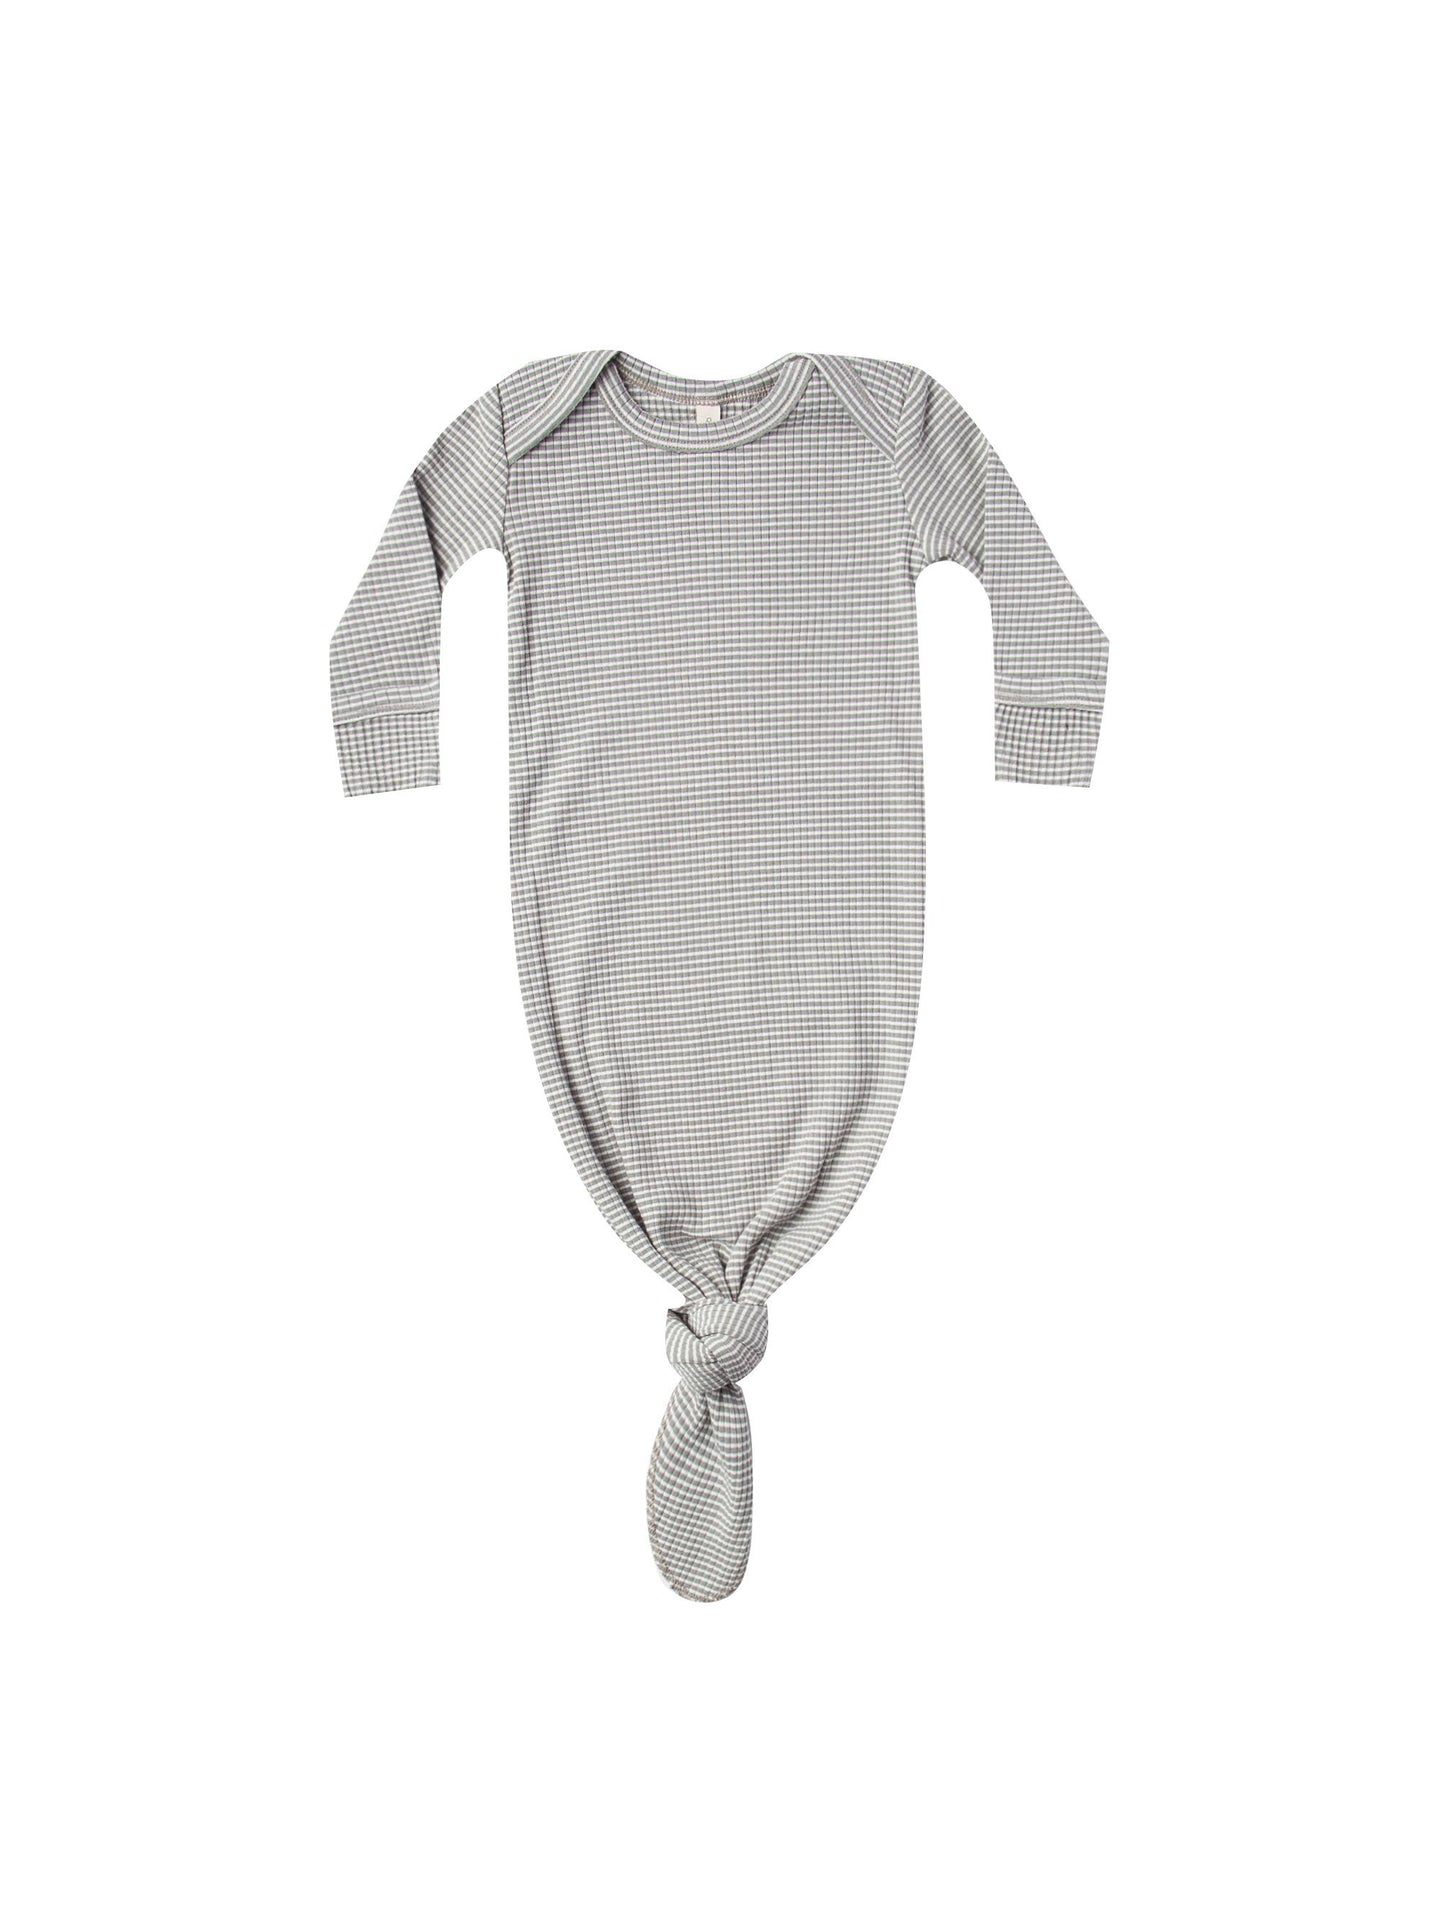 Quincy Mae - Organic Ribbed Knotted Baby Gown - Eucalyptus Stripe